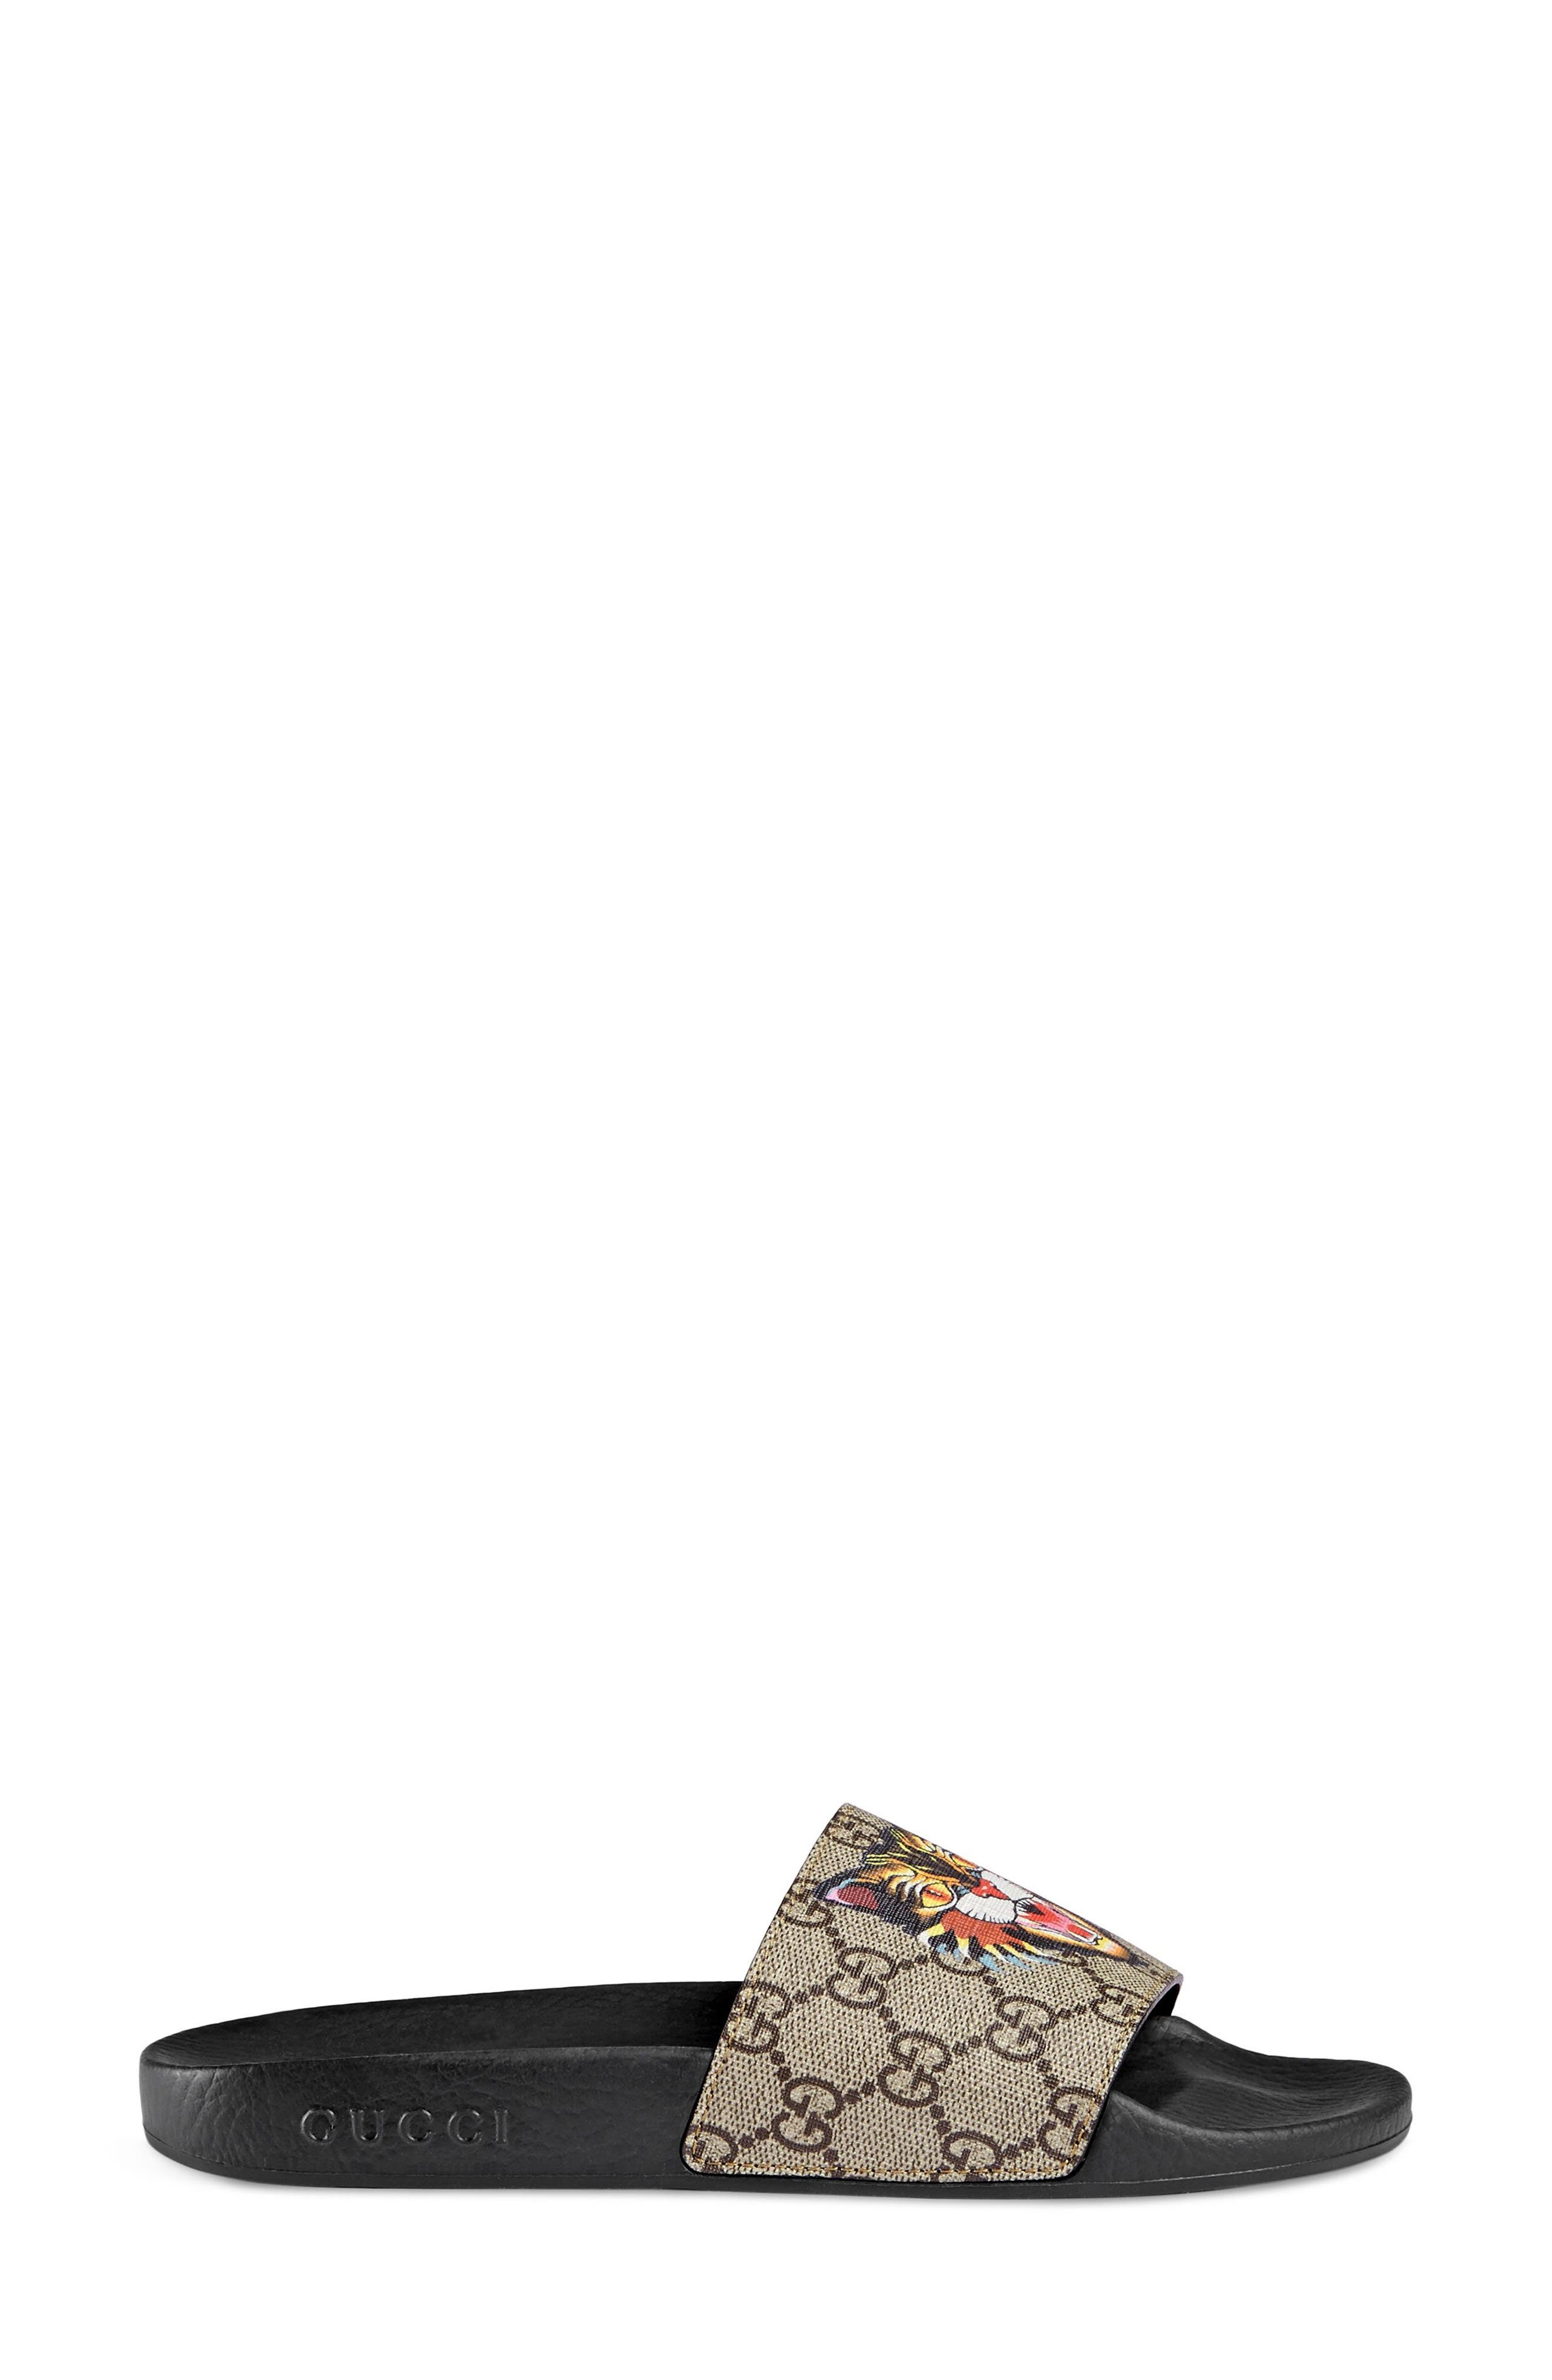 Alternate Image 1 Selected - Gucci Pursuit Tiger Print Slide Sandal (Women)